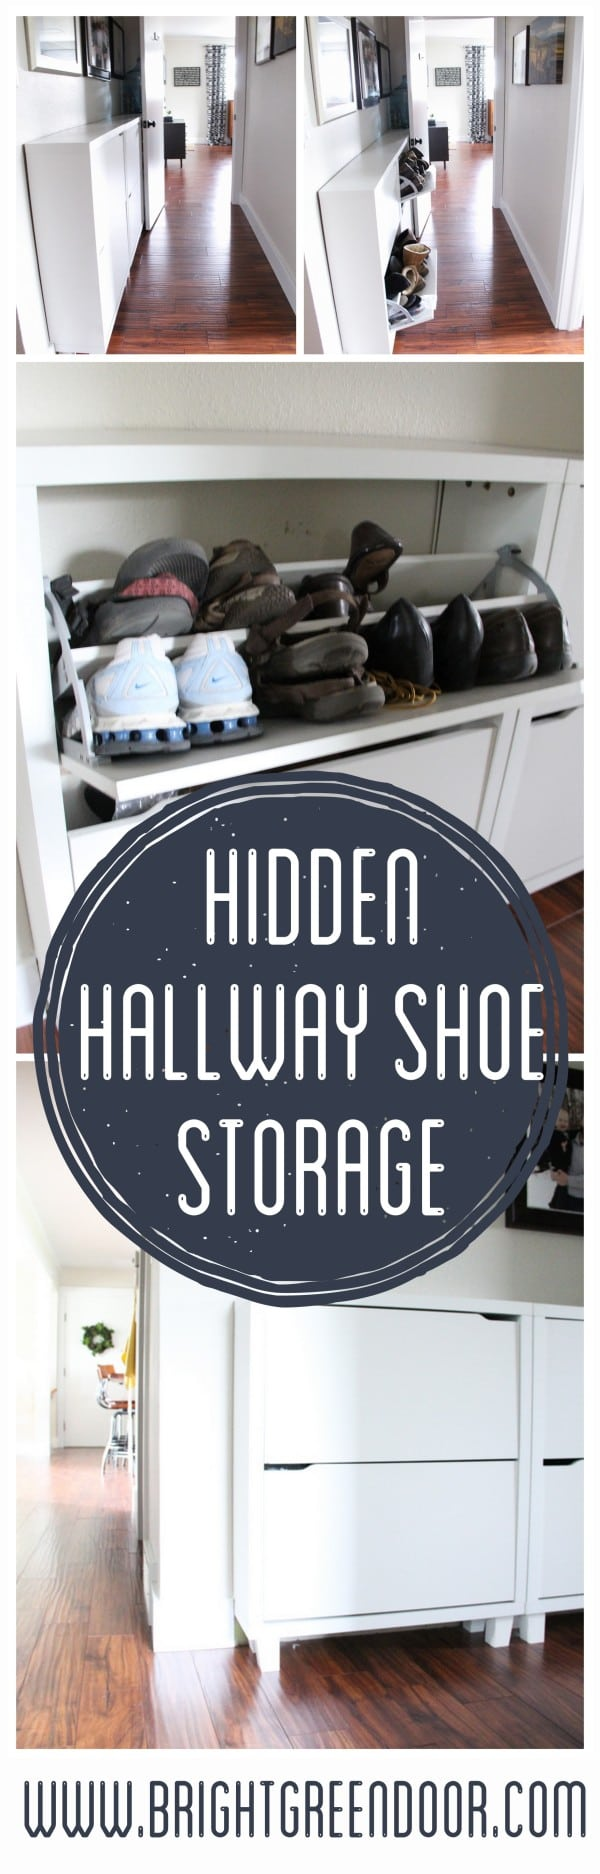 Hallway Shoe Storage Solution